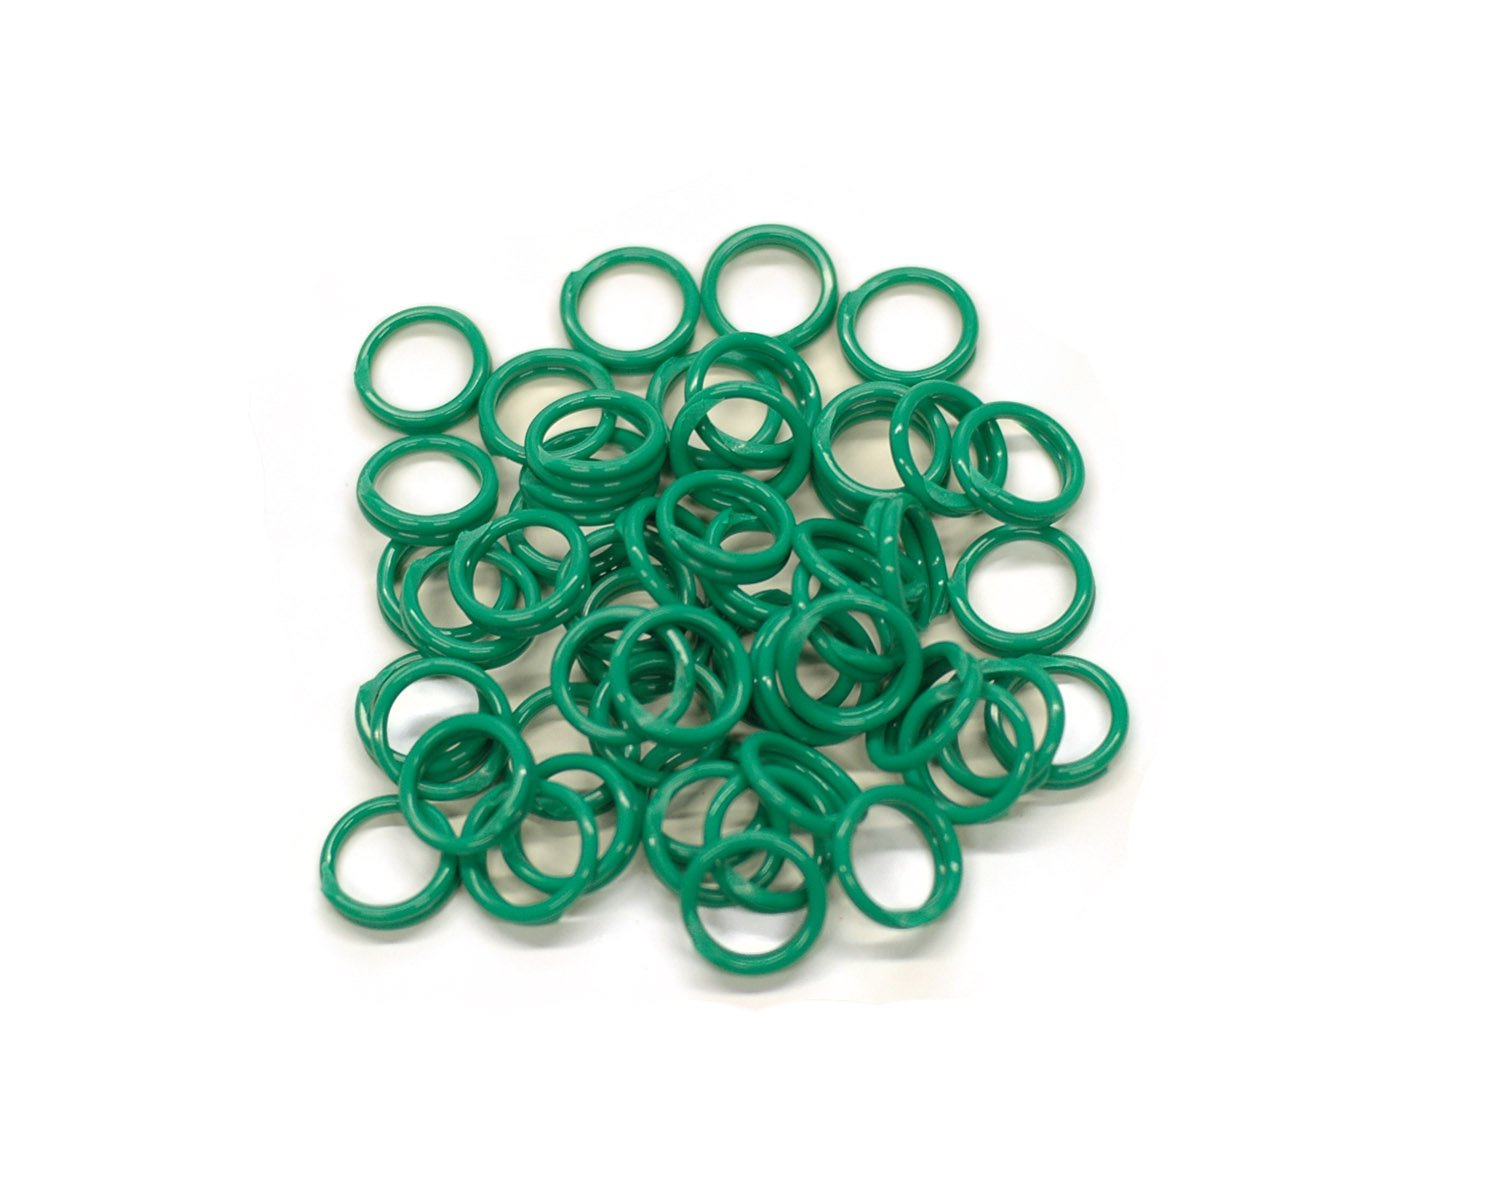 Brower 398N9CG 9/16-Inch Spiral Leg Bands, Green (Pack of 100)